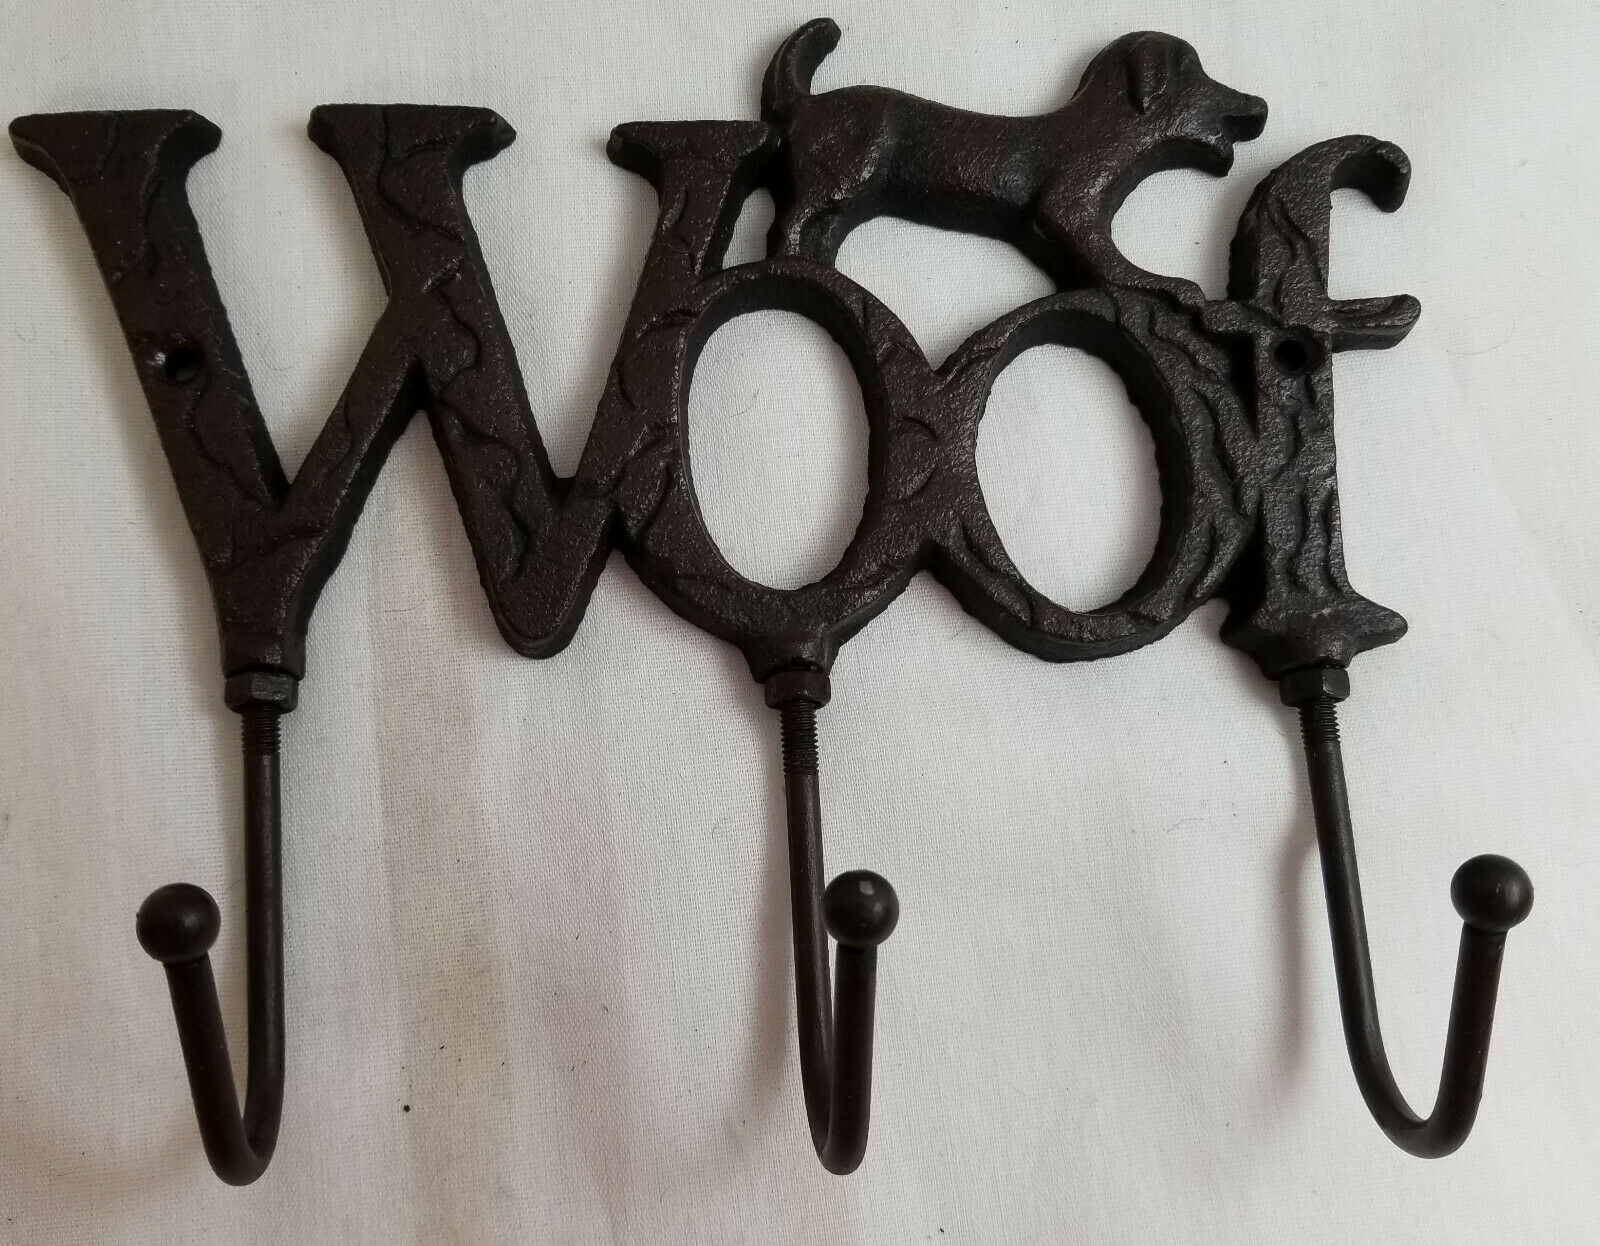 Primary image for WOOF Puppy Dog Cast Iron Wall Hanger Hook Rack Decorative Black 7""